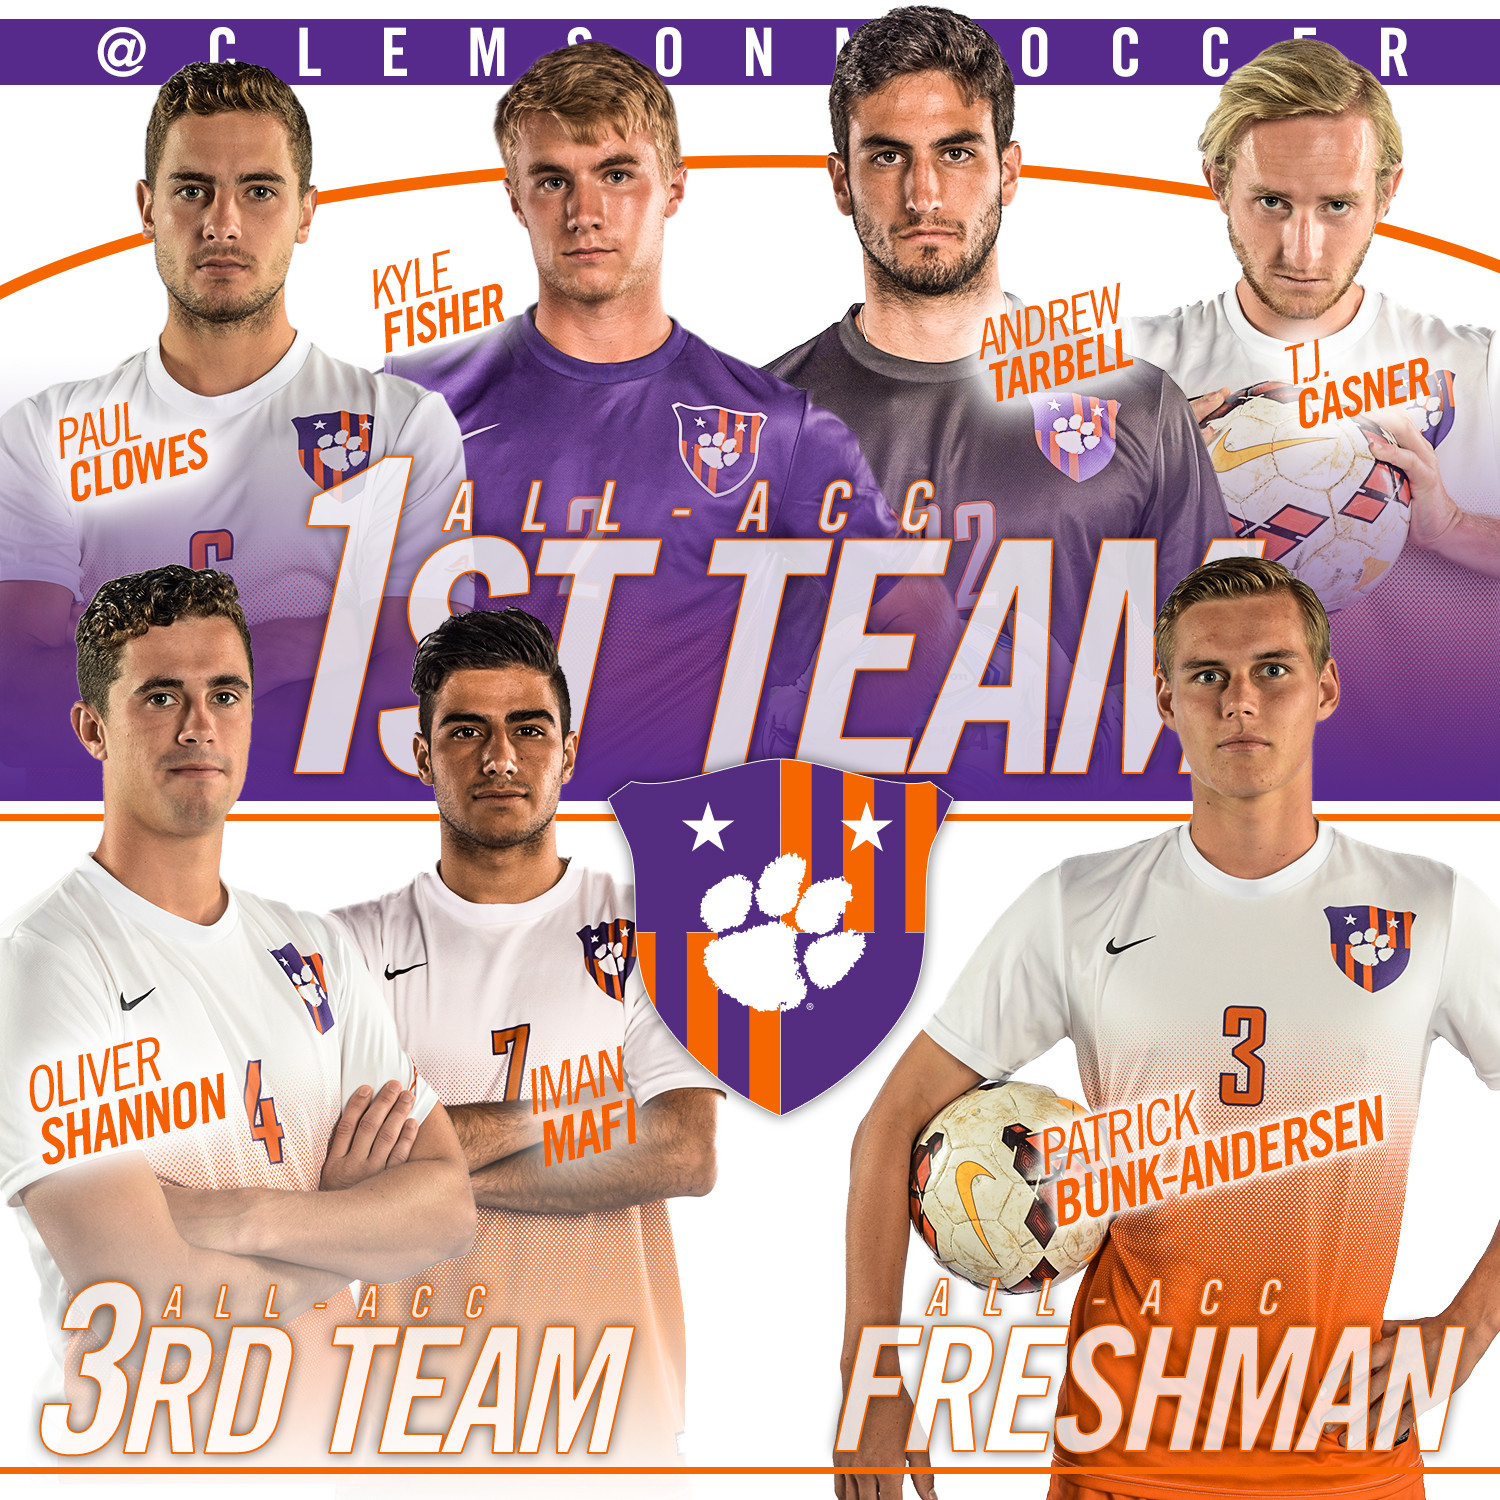 Clowes & Fisher Named ACC Players of the Year, Seven Tigers Earn All-ACC Honors